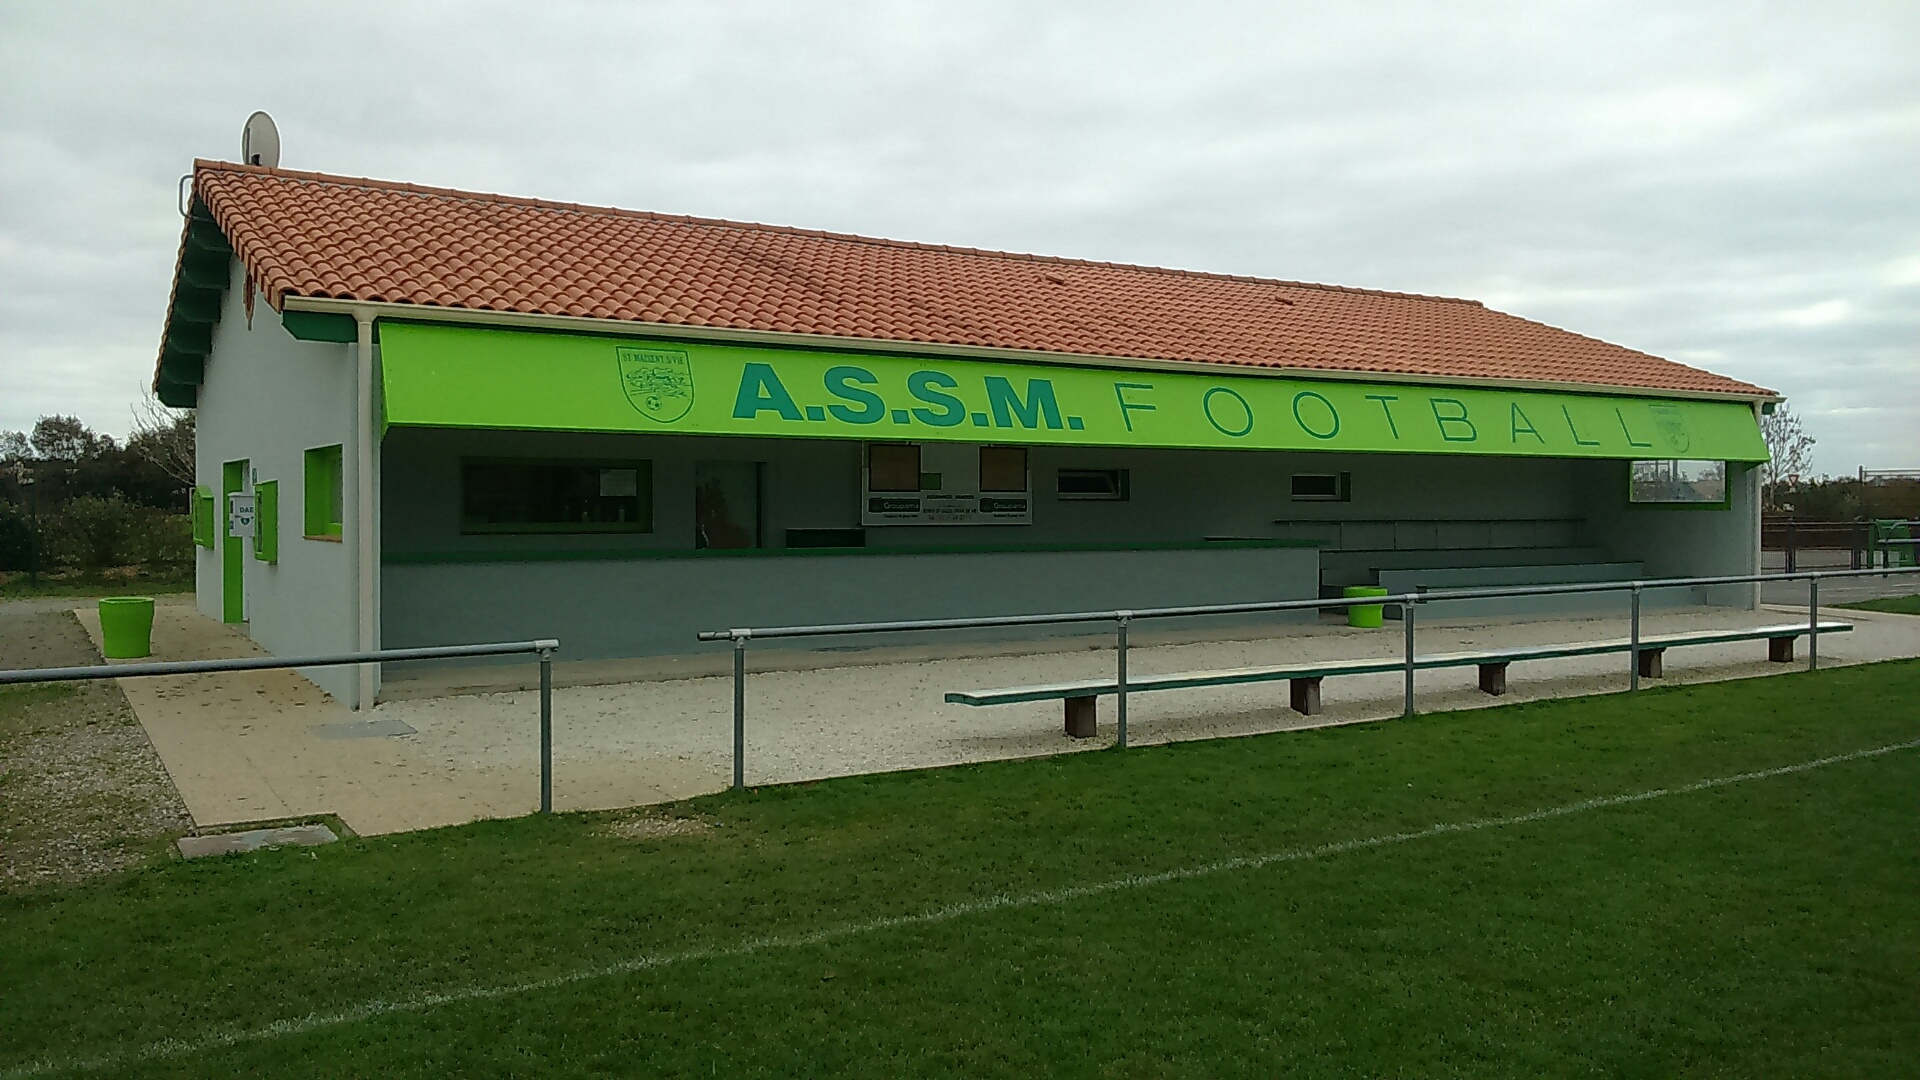 Stade-st-maixent